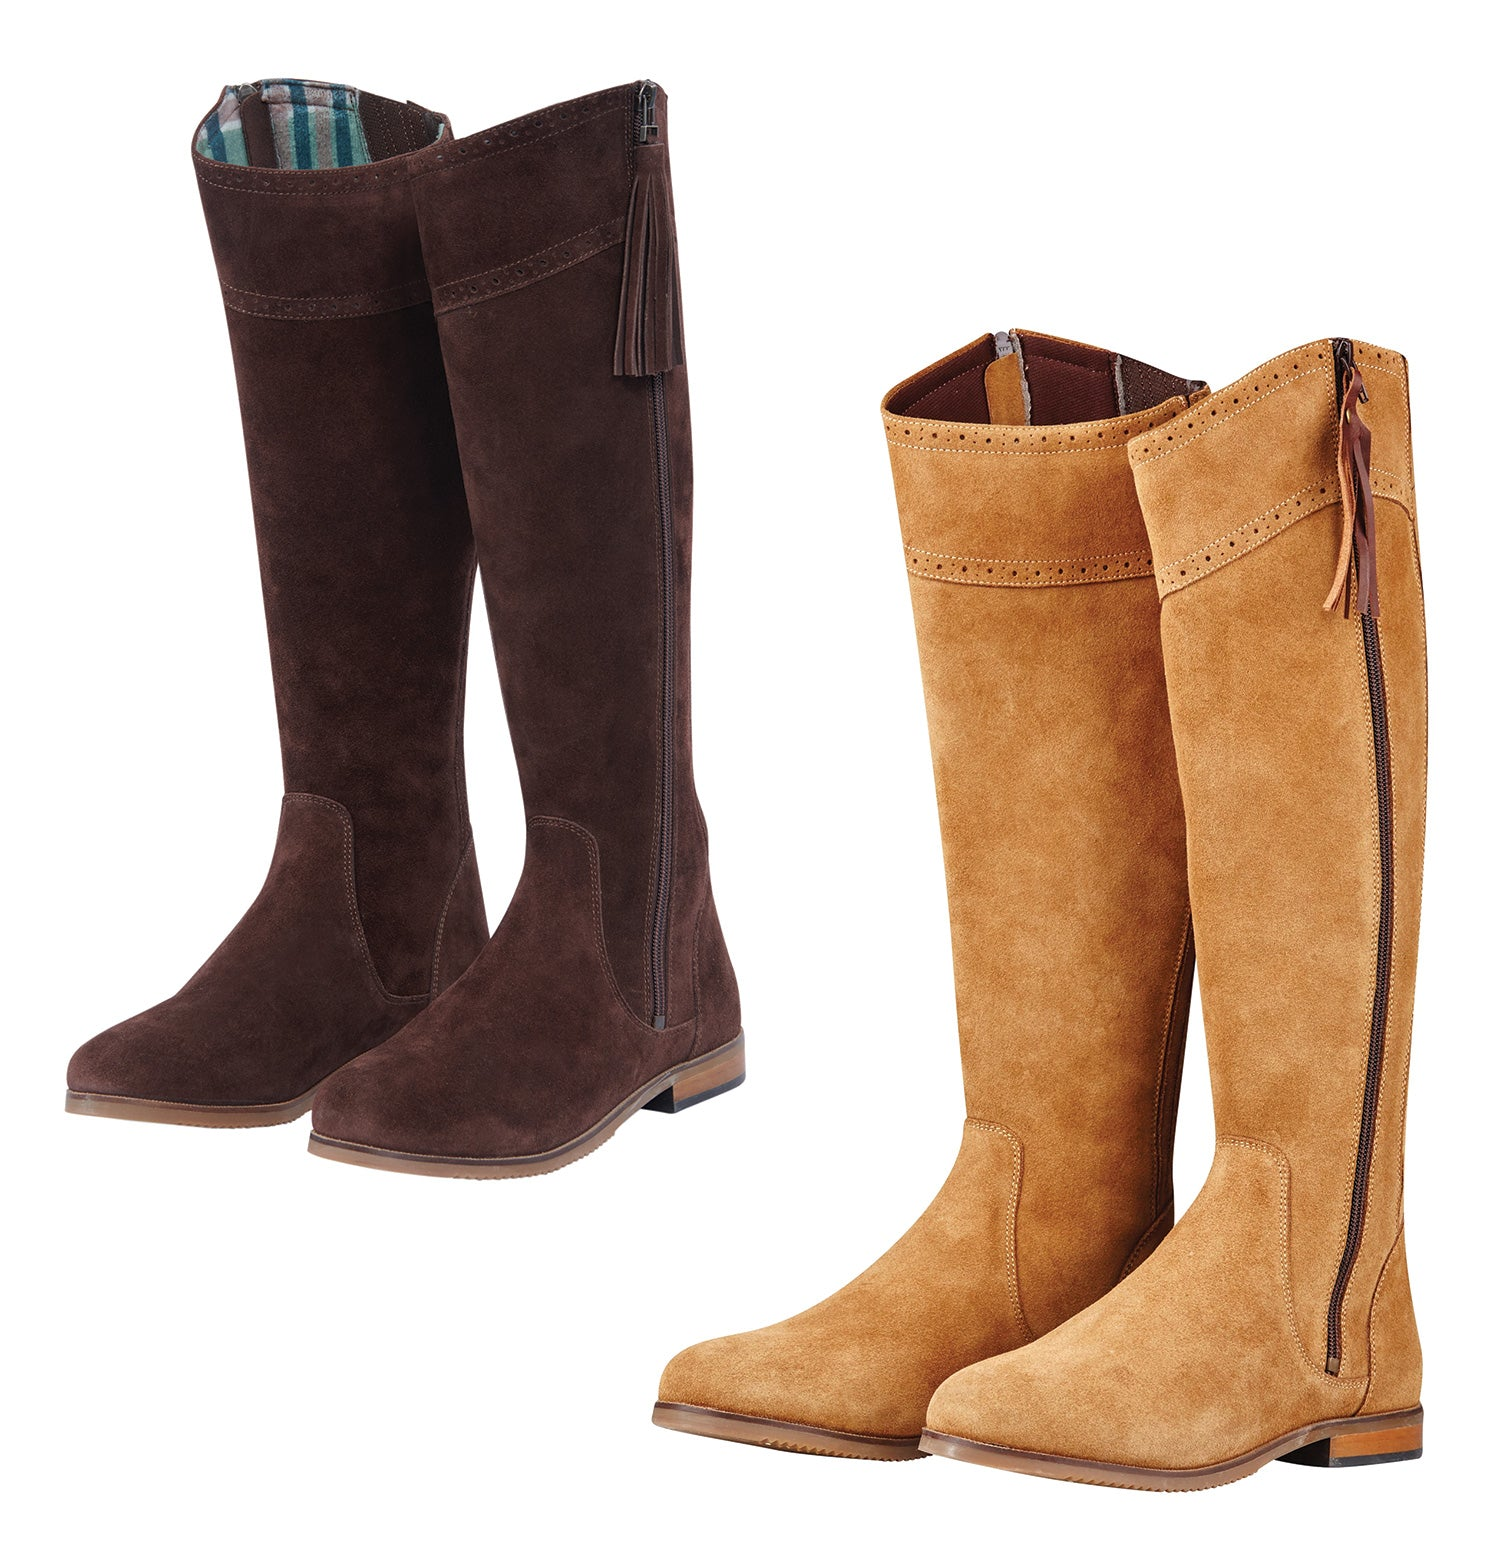 Dublin Kalmar SD Tall Boots | Chocolate, Stone